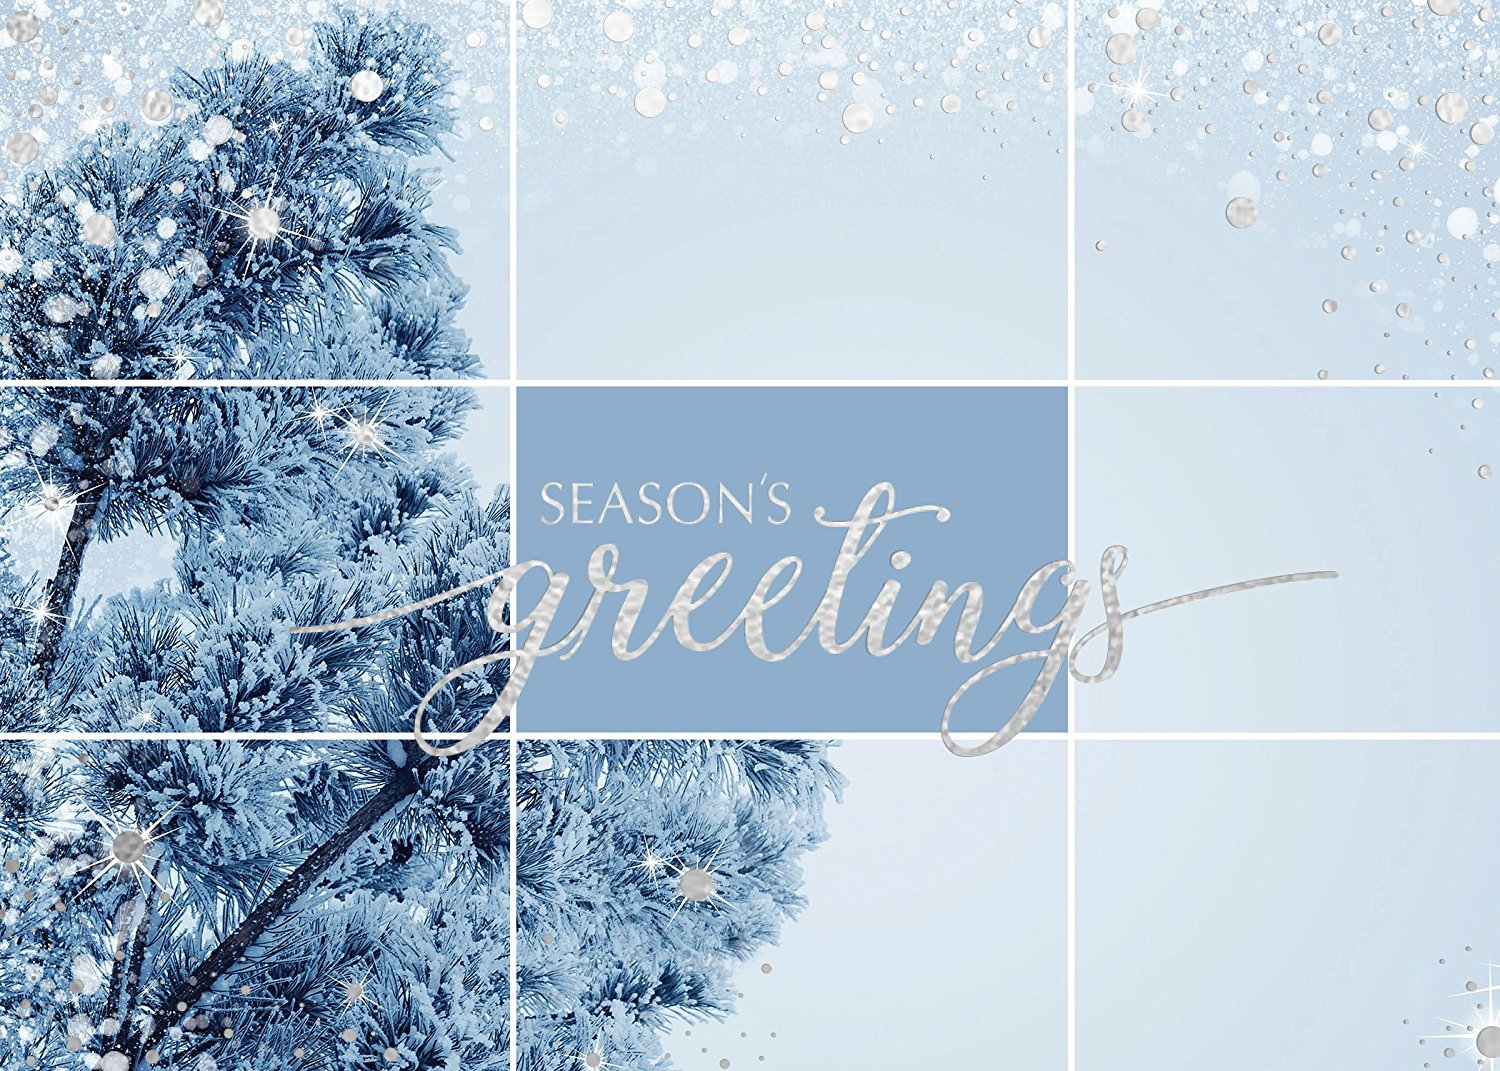 Holiday Foil Printed Greeting Cards - H1703. Greeting Card with Silver Foil Snow Elements and Season's Greetings in Silver Foil. Box Set Has 25 Greeting Cards and 26 Silver Foil Lined Envelopes.